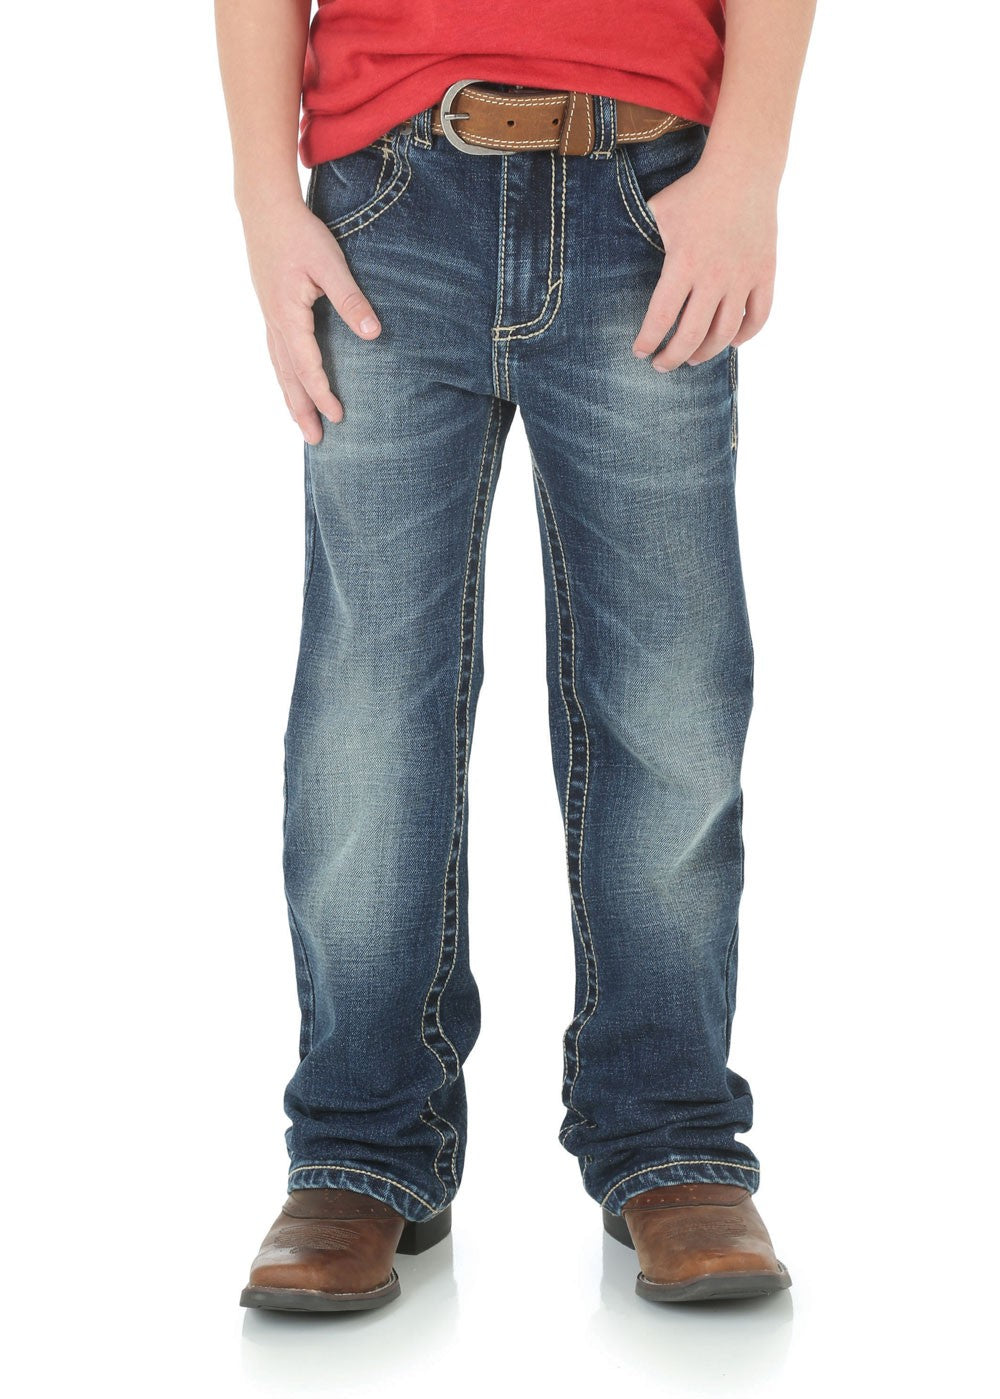 Wrangler | Kids | Jeans | Bootcut | Kids | 20x 42 Vintage - BK8 Outfitters Australia